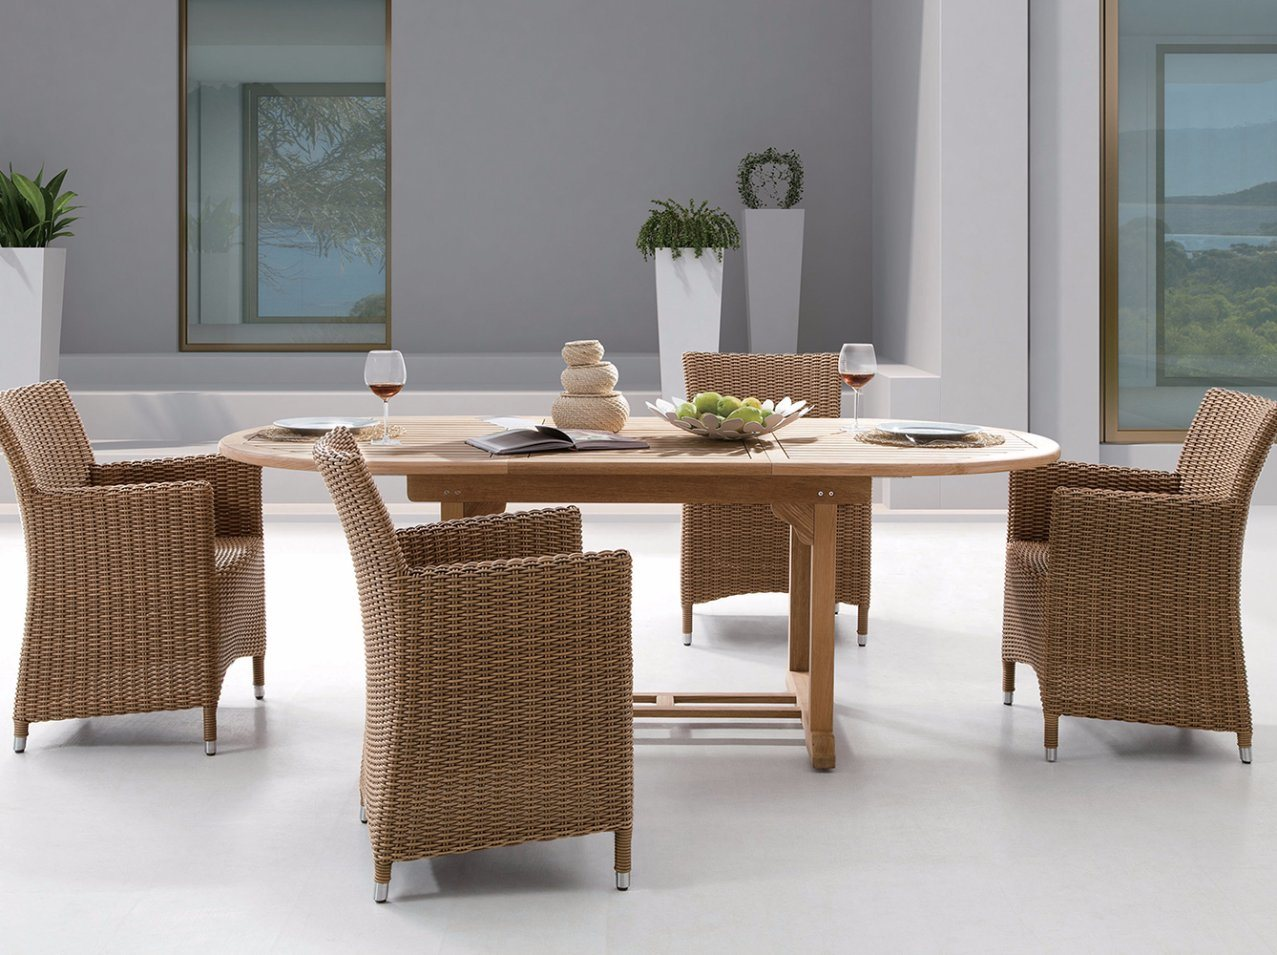 China rattan outdoor patio wicker auckland home hotel office garden furniture j375hr china dining chair garden chair